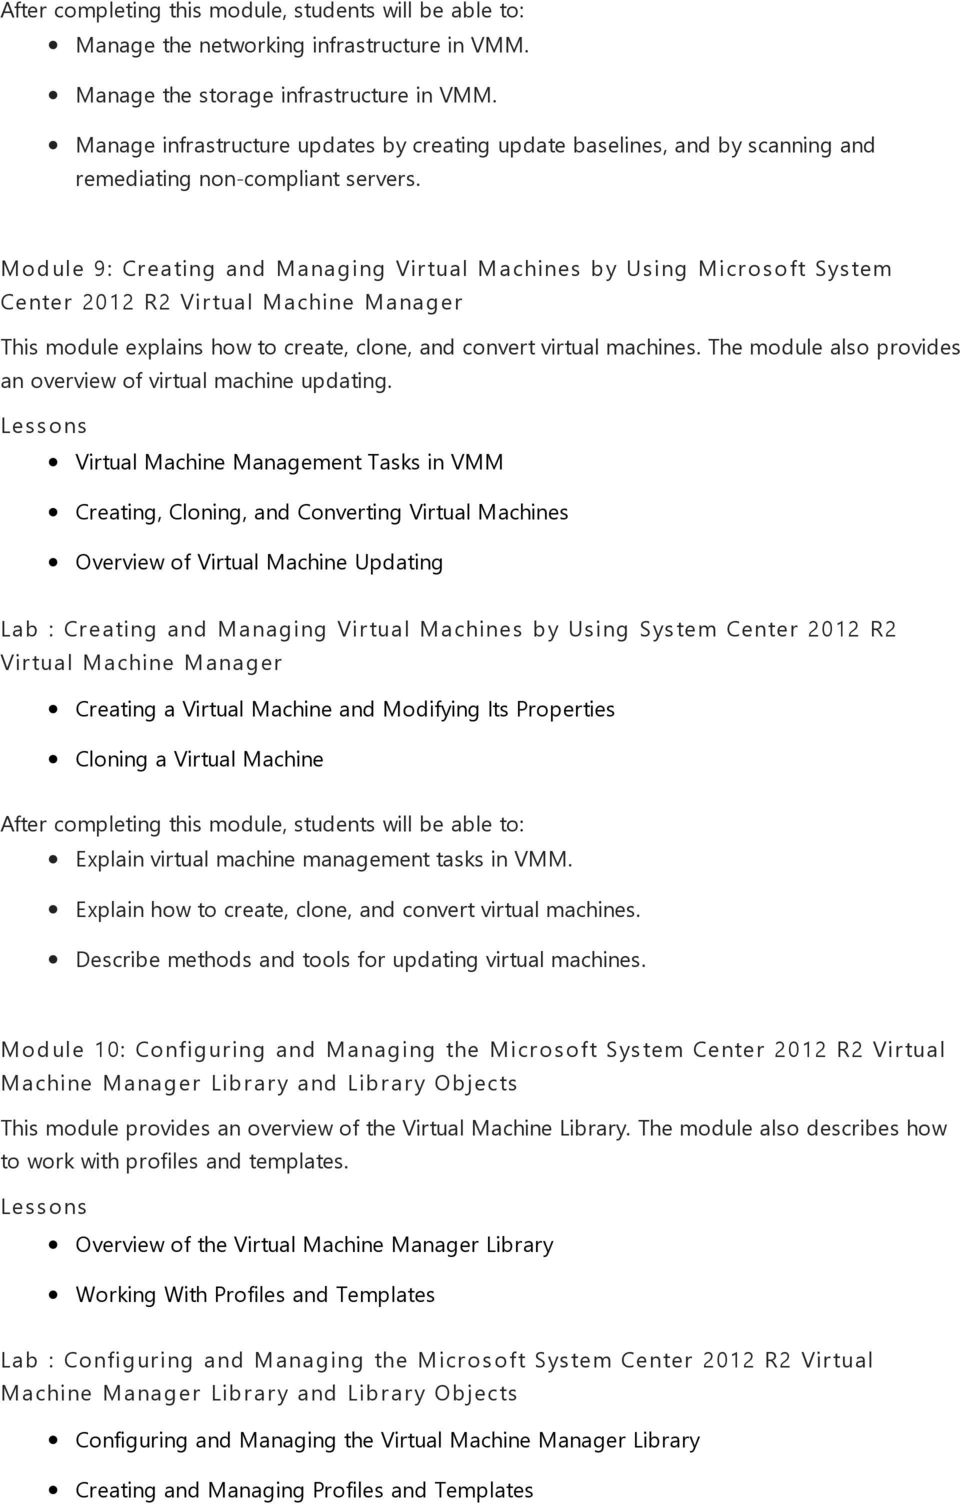 Module 9: Creating and Managing Virtual Machines by Using Microsoft System Center 2012 R2 Virtual Machine Manager This module explains how to create, clone, and convert virtual machines.